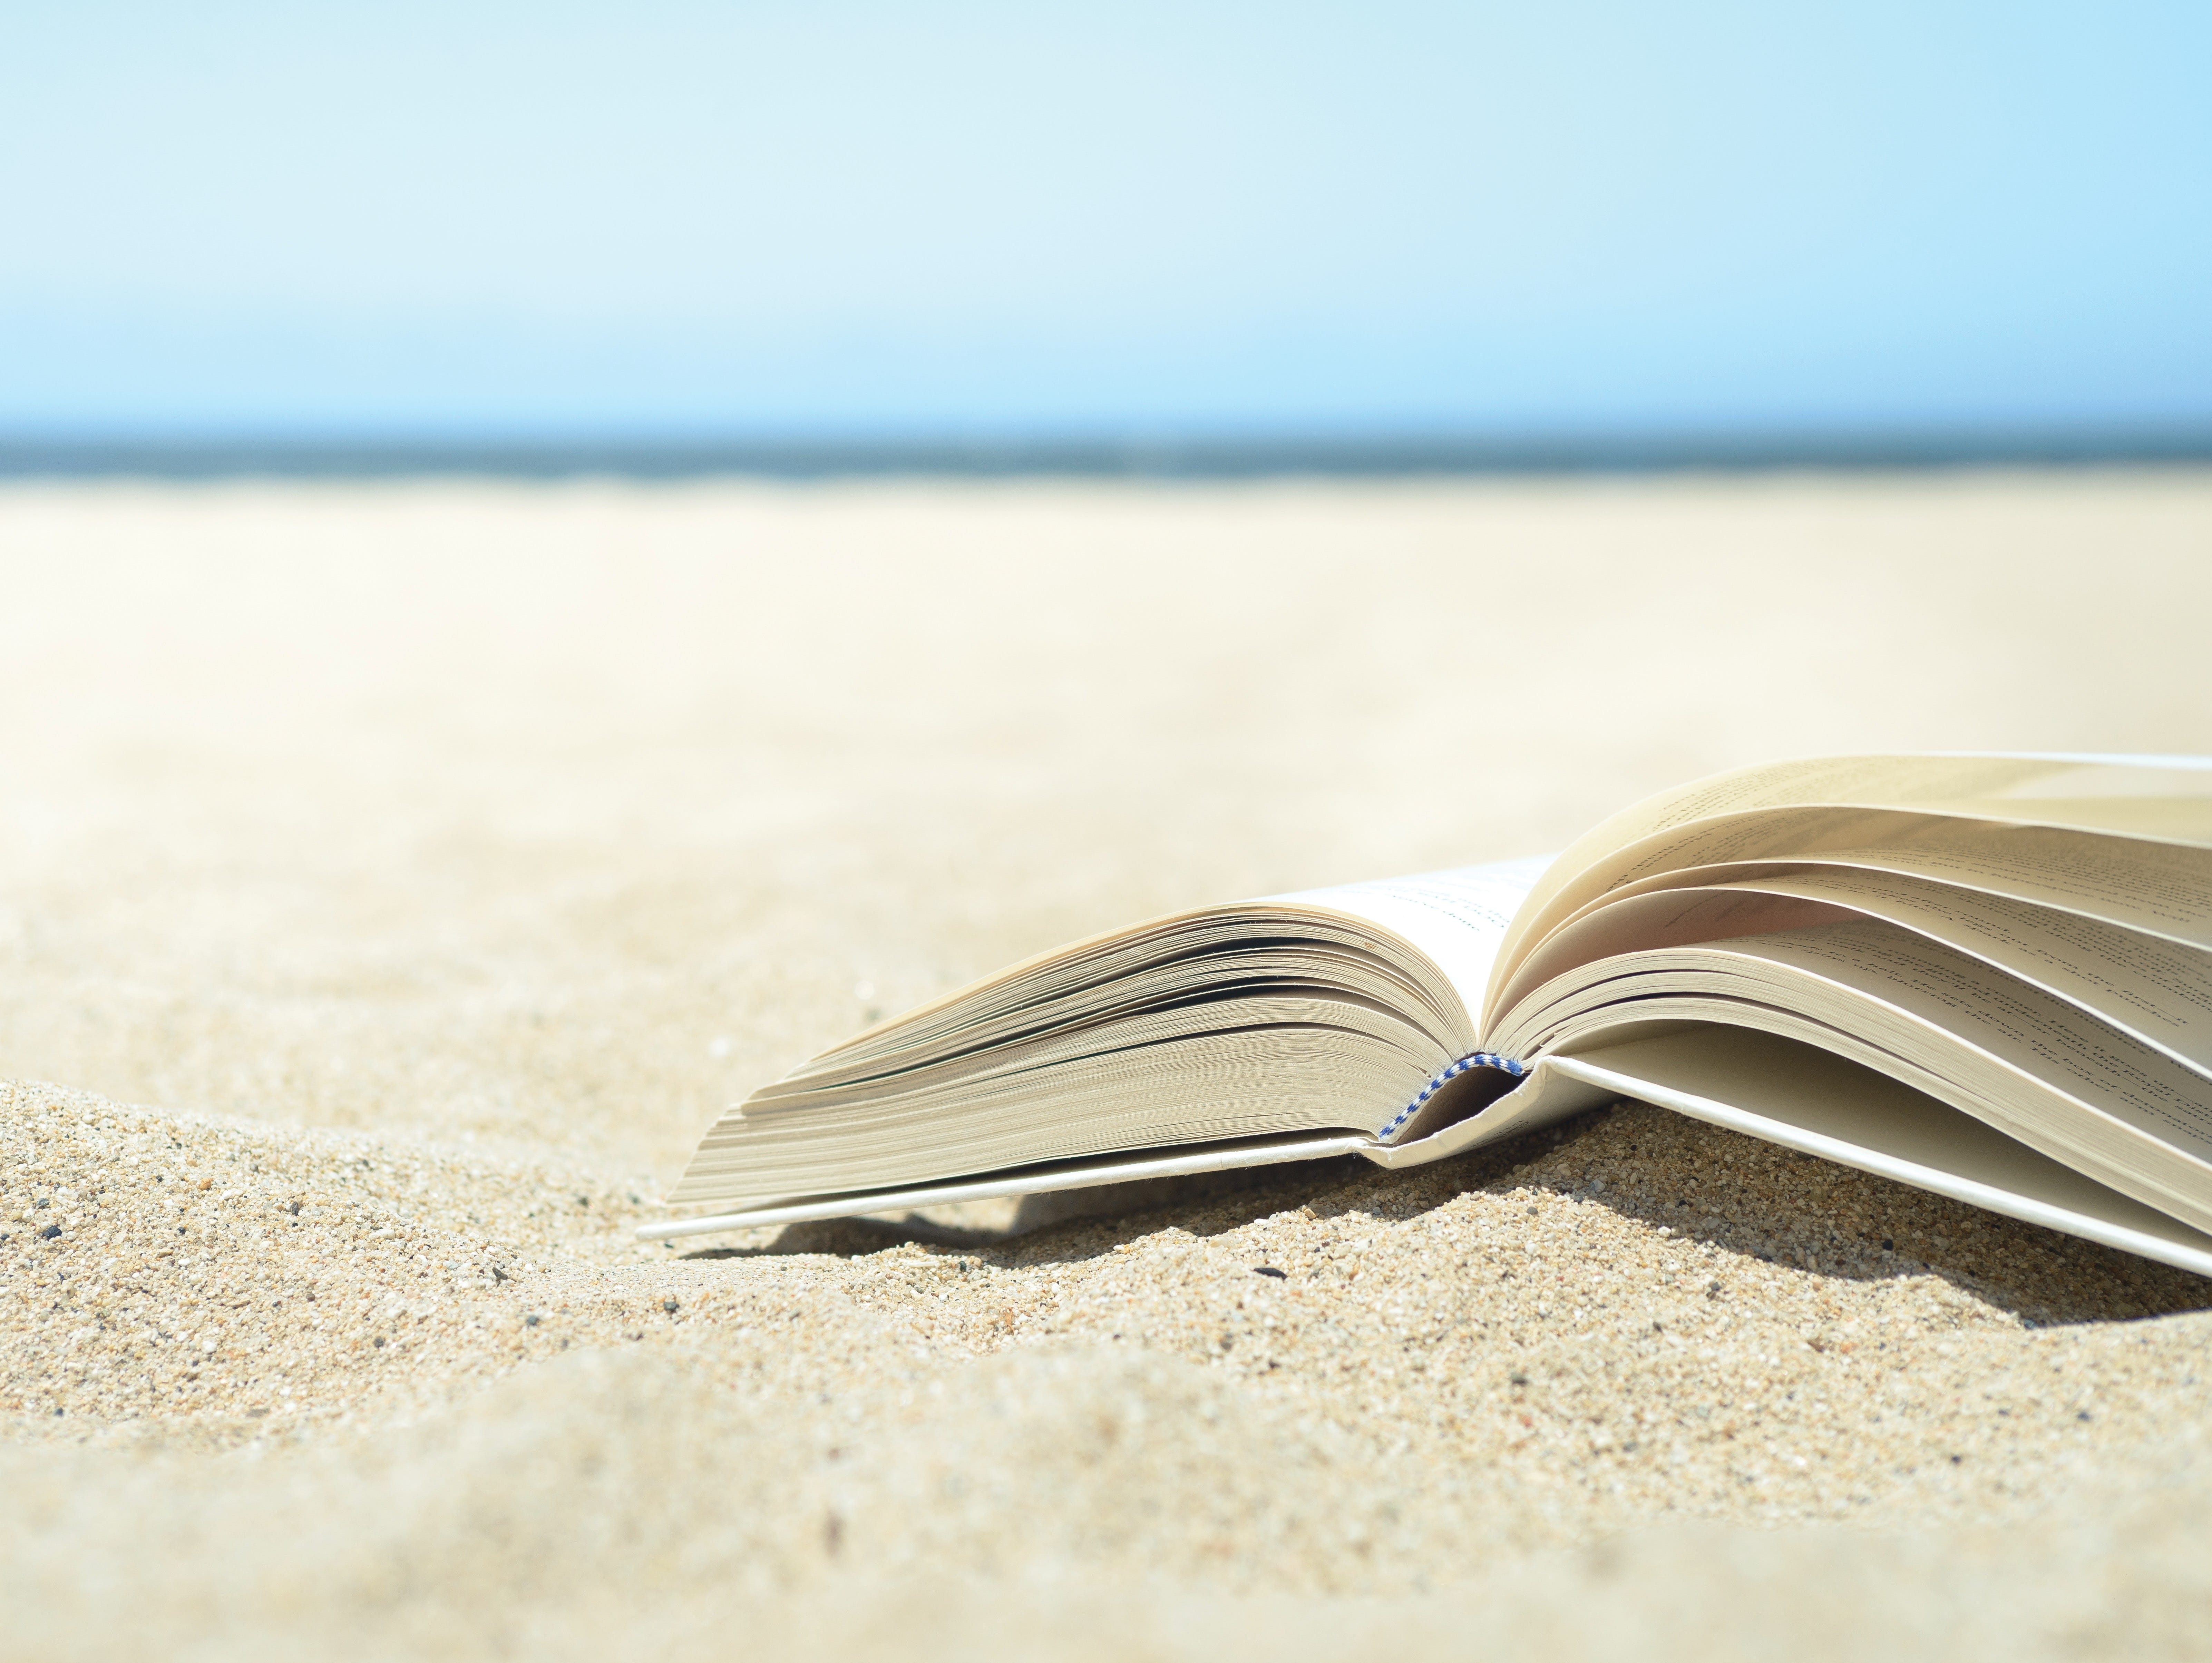 You're all set for the beach. Sunscreen? Check. Shades? Check. Folding chairs and umbrella? Check and check. Now, don't forget to take a great book.